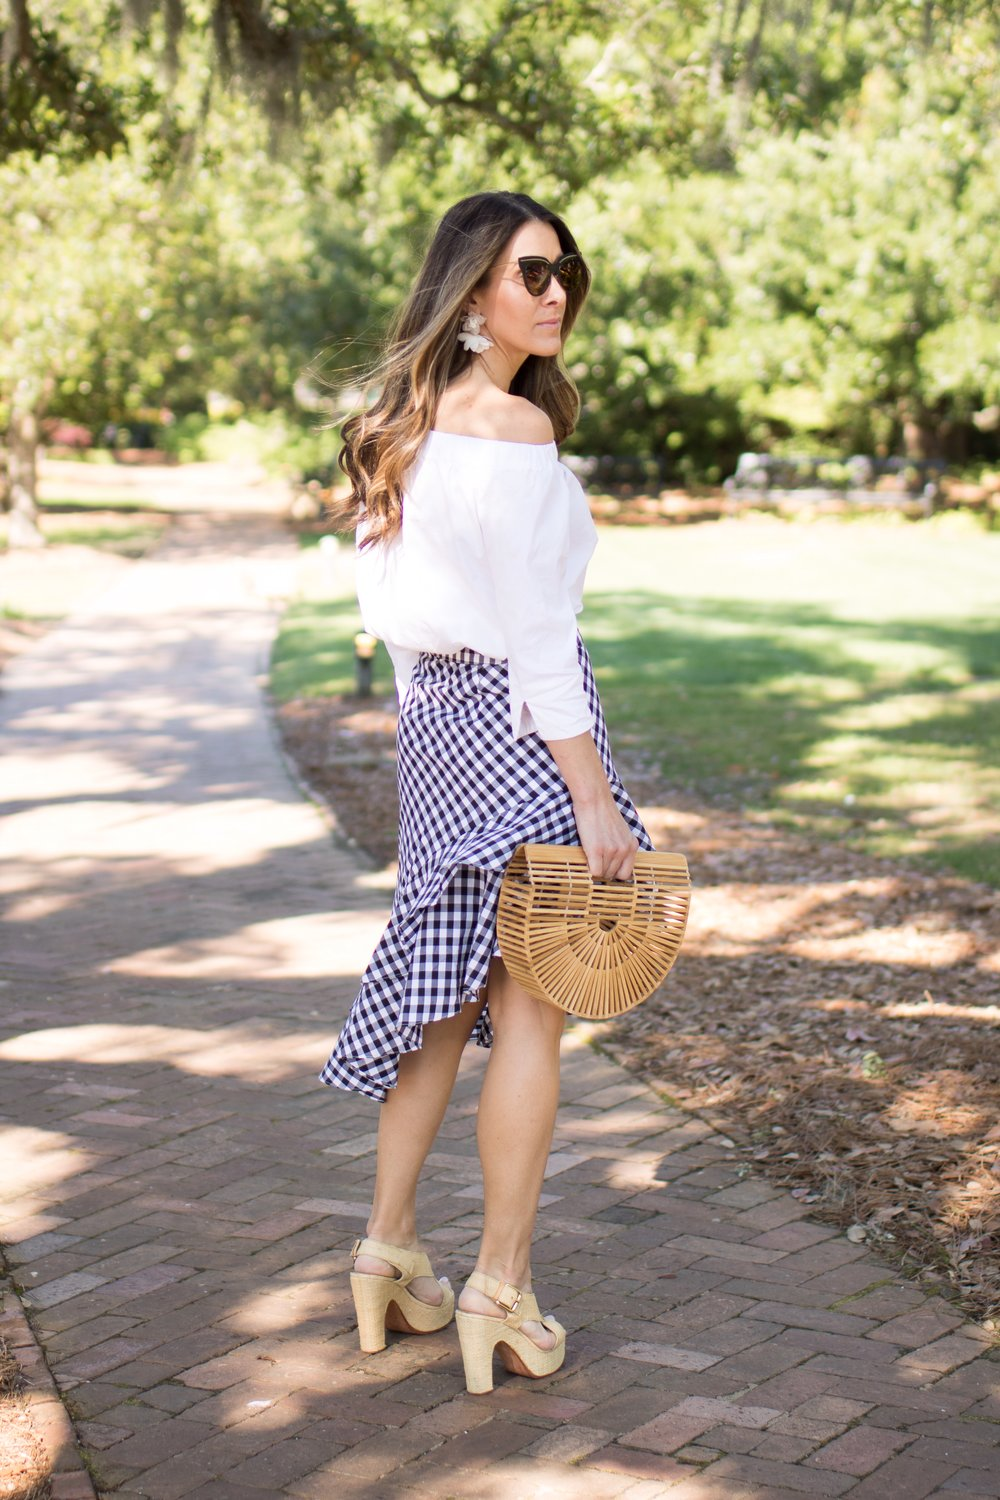 SKIRT -  TARGET  | TOP - ZARA - SIMILAR  HERE  AND  HERE  | SHOES - KORS - SIMILAR  HERE  AND  HERE  | BAG -  HERE  | SUNGLASSES -  BOTTEGA VENETA  | EARRINGS -  SPROUTS DESIGNS  | LIPSTICK -  NARS